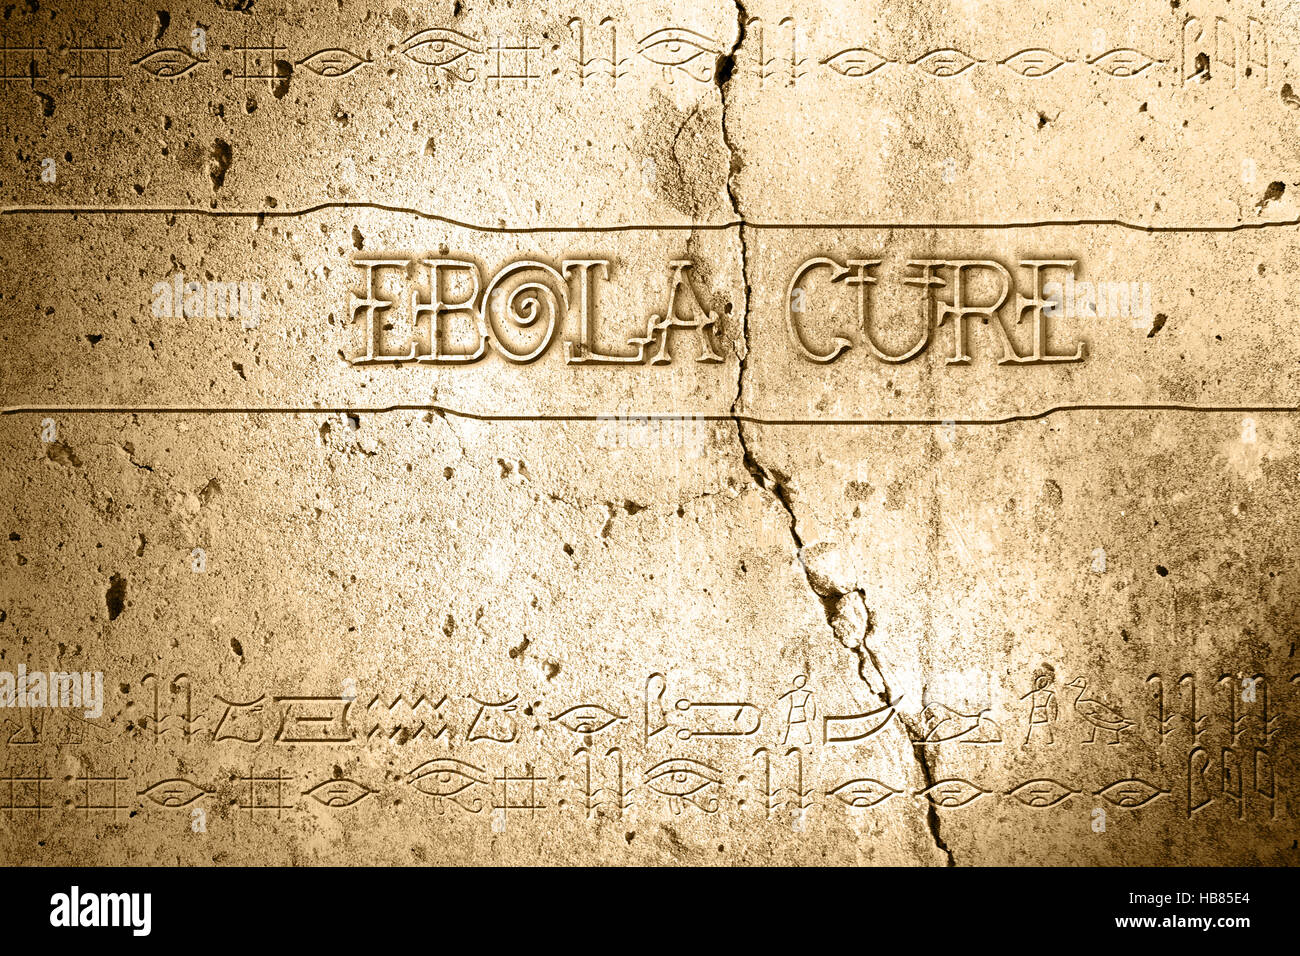 ebola cure - Stock Image